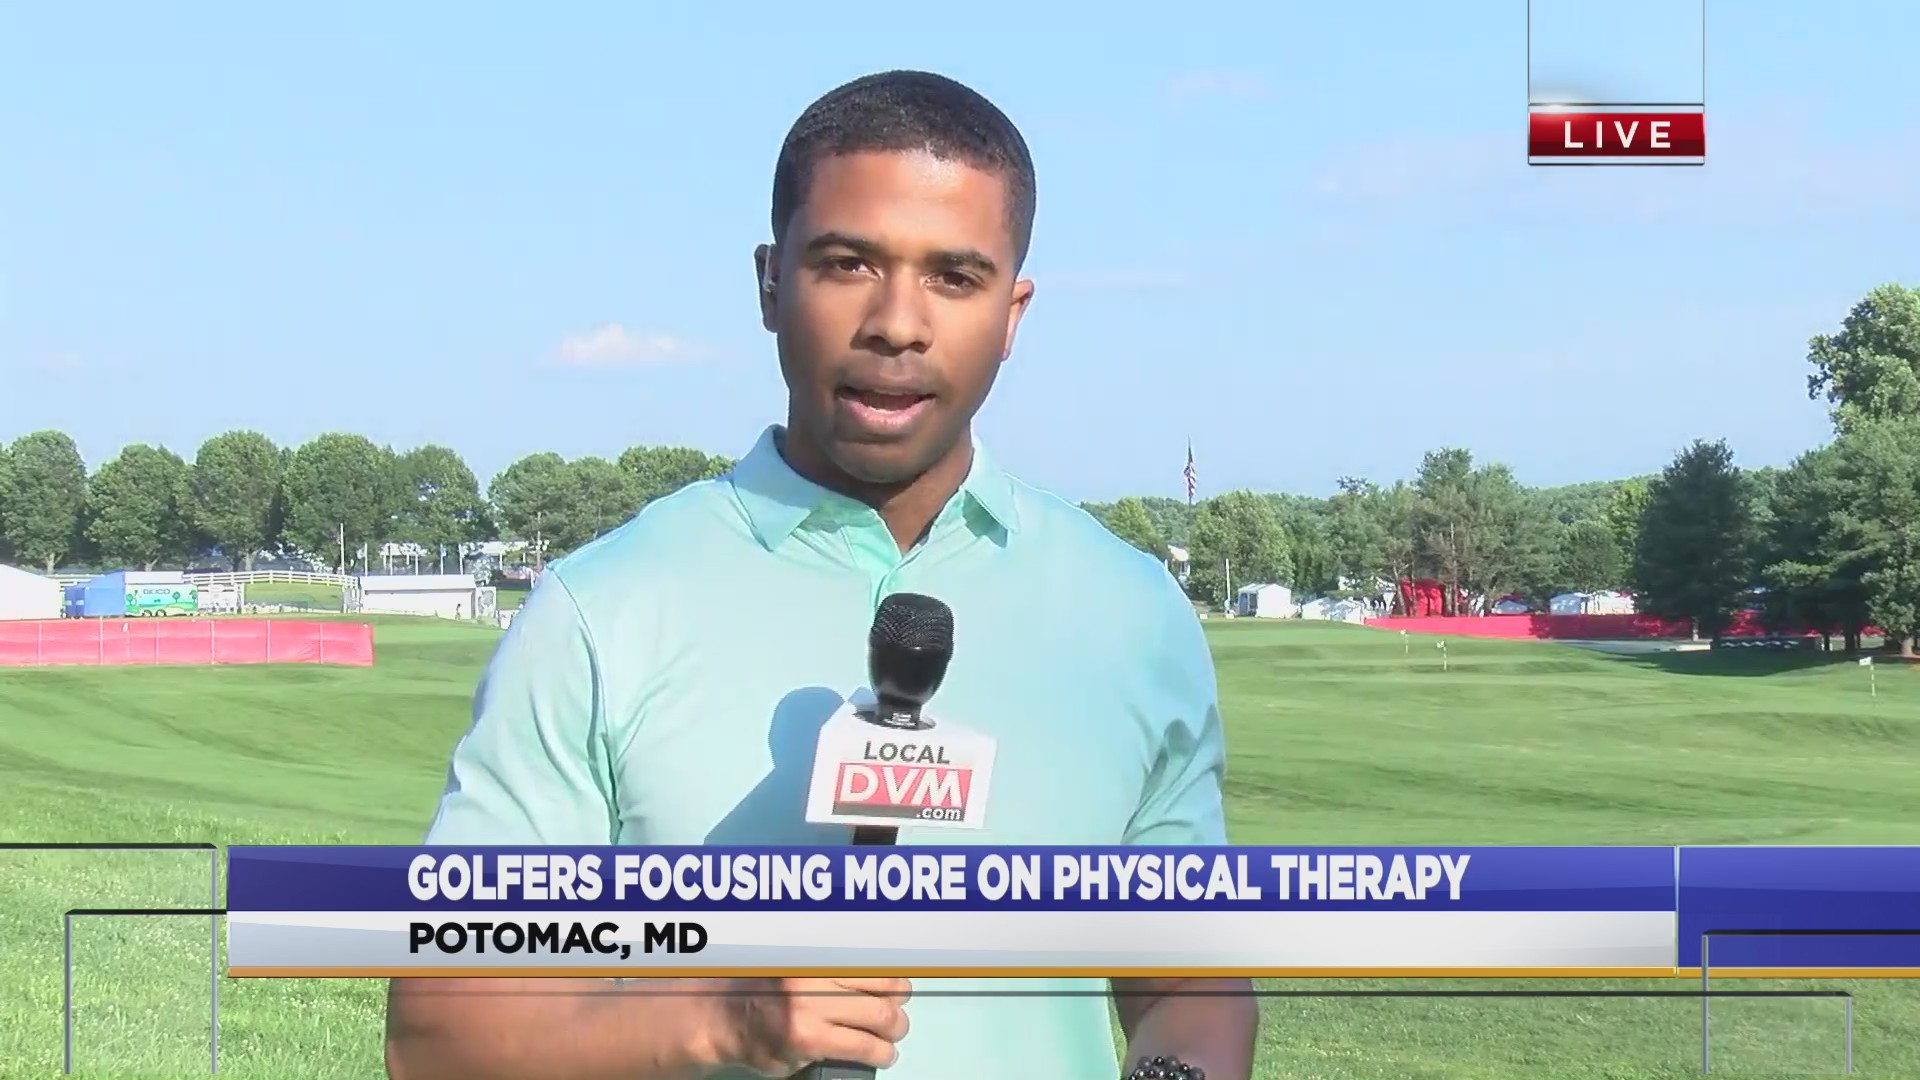 Golfers_focusing_on_physical_therapy_0_20180629003857